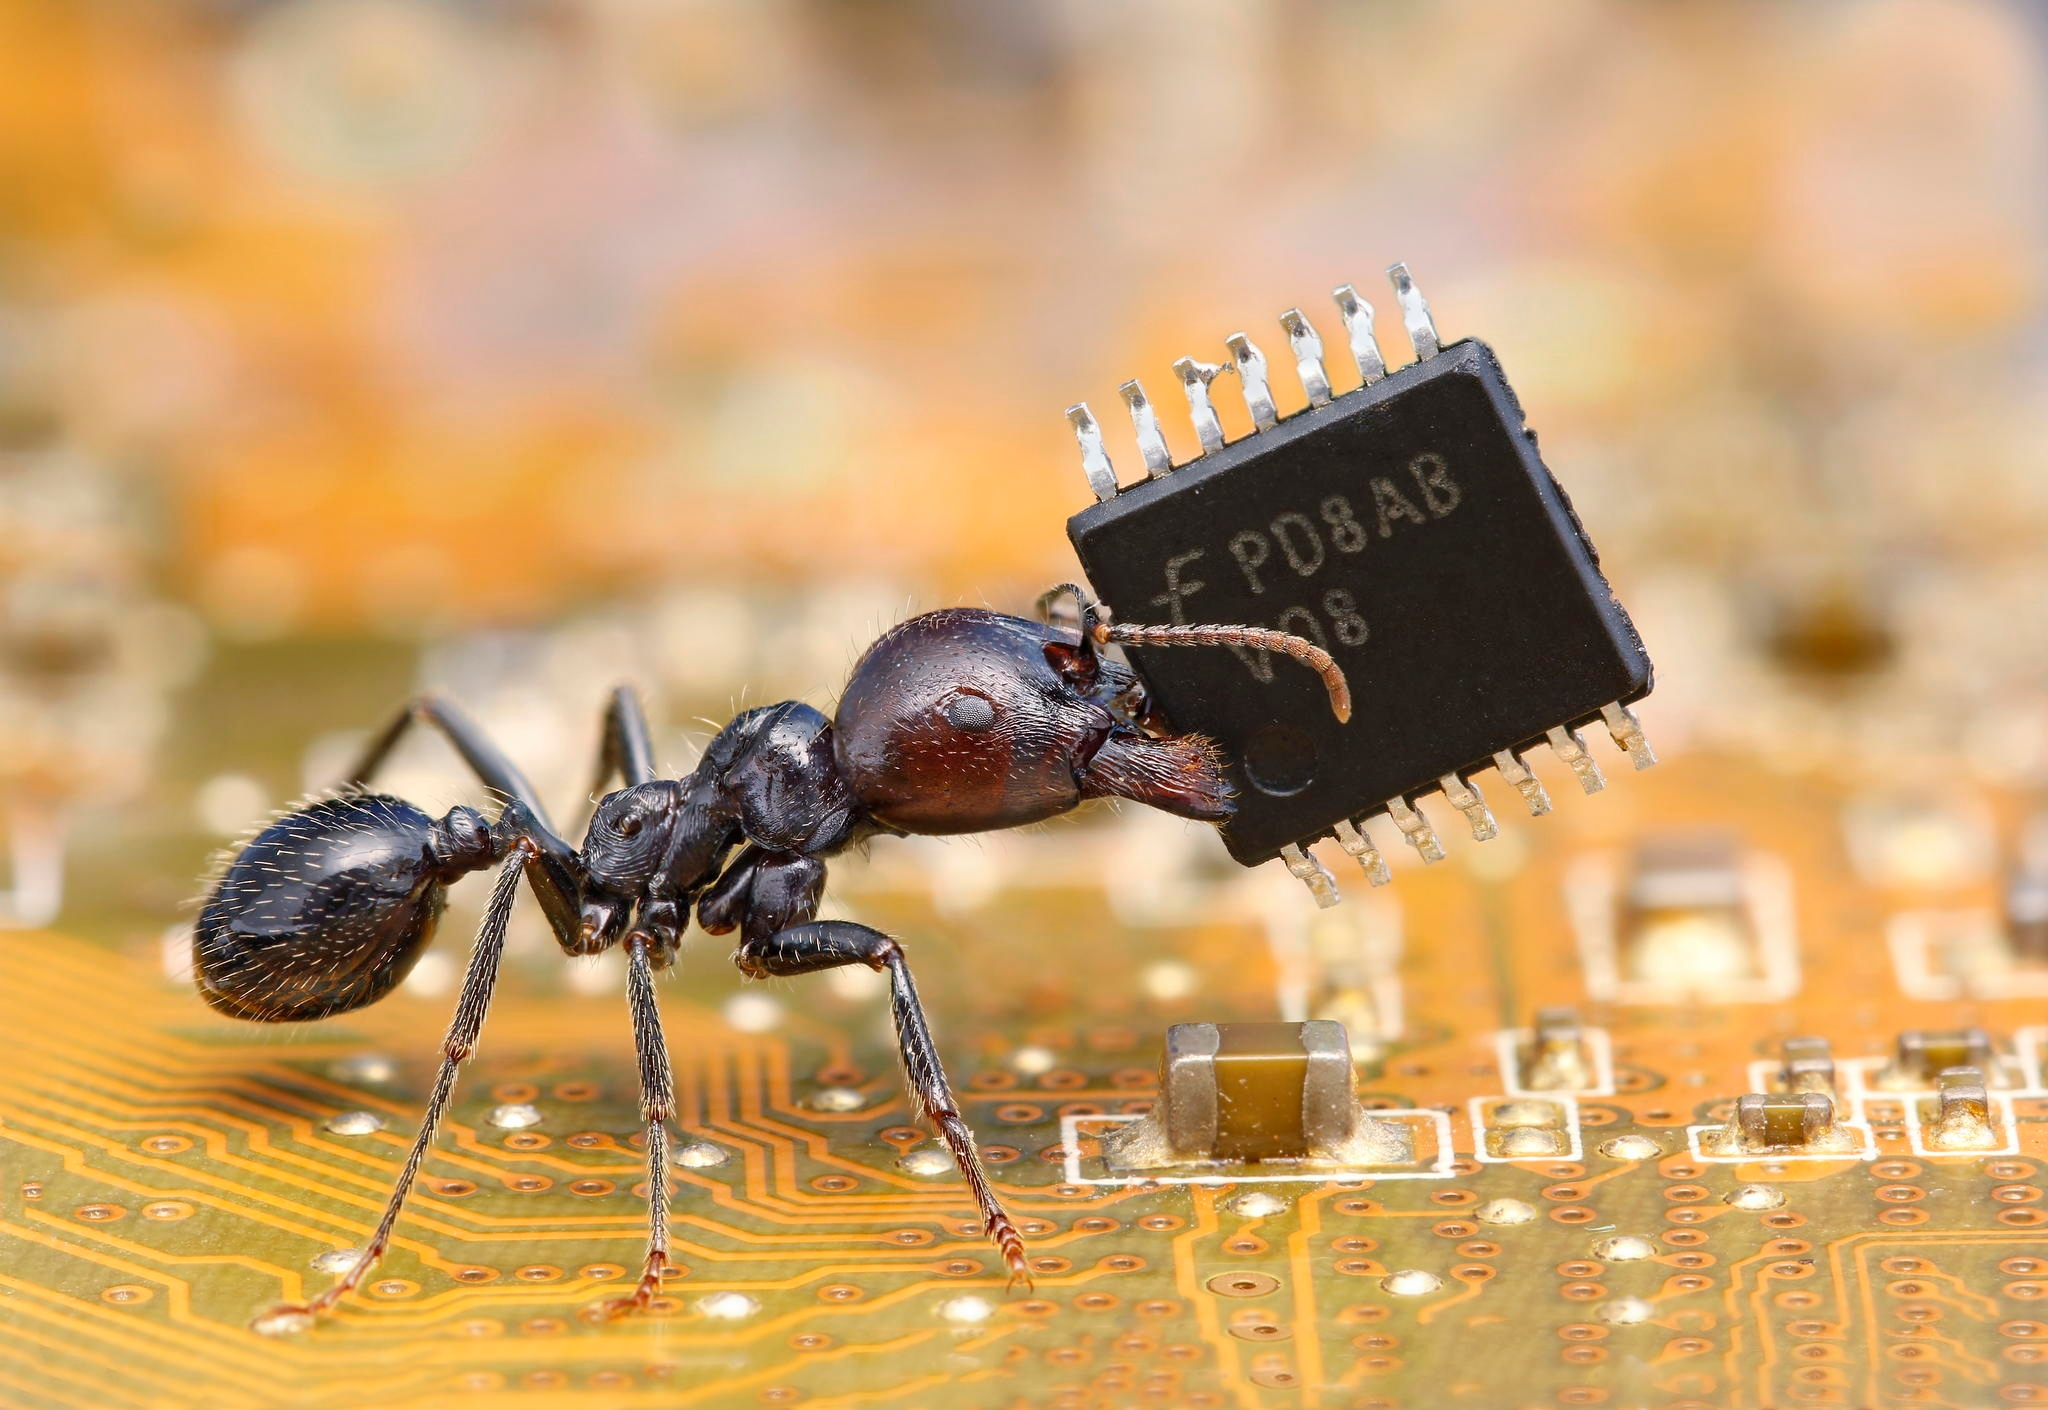 Ant-with-Microchip